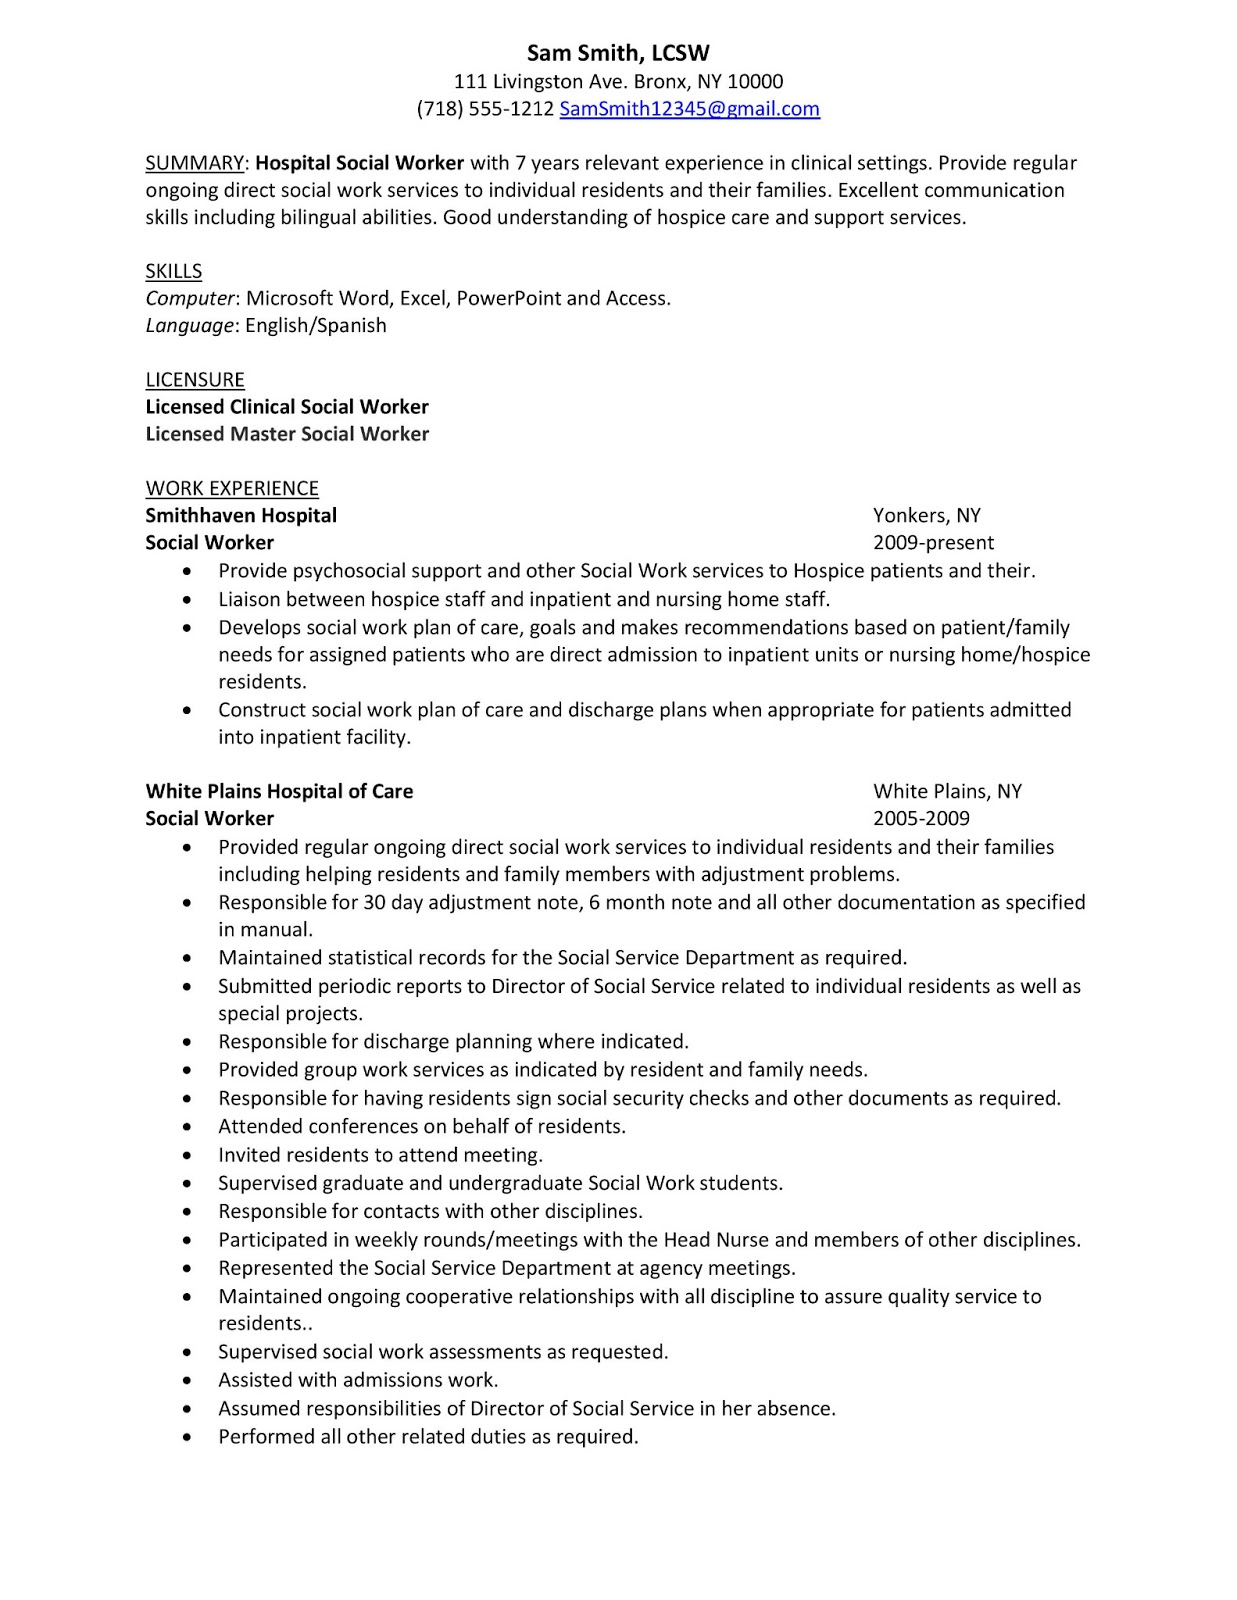 sample resume hospital social worker. Resume Example. Resume CV Cover Letter